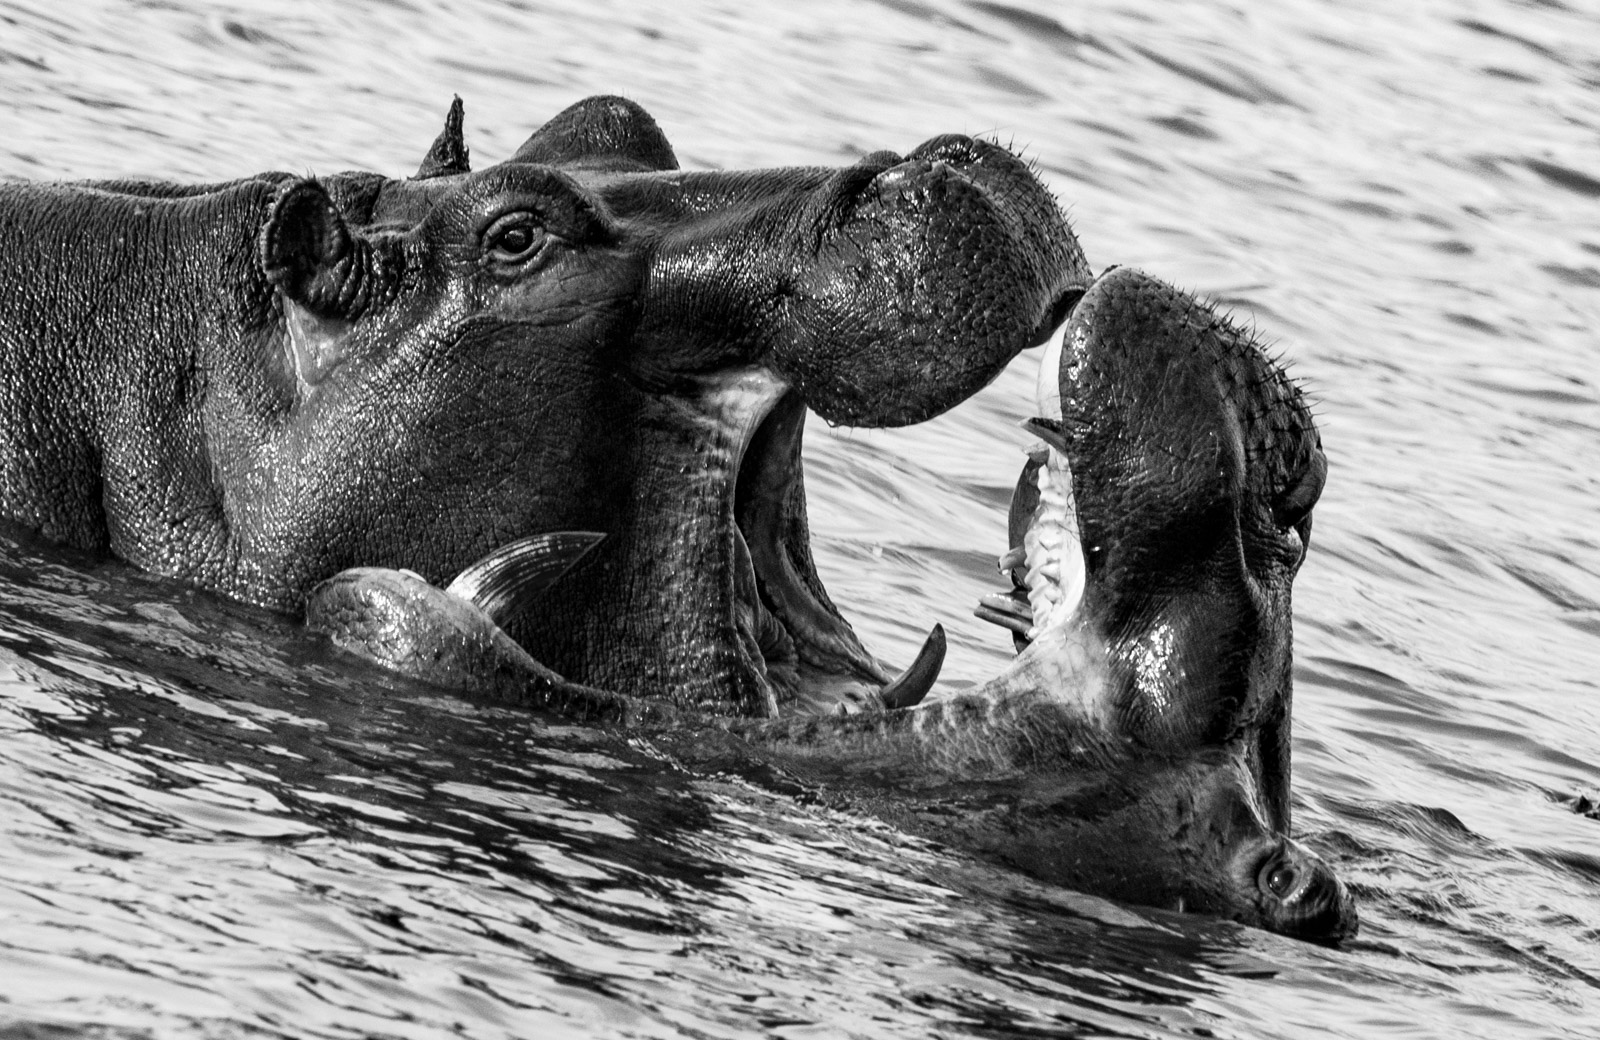 Hippos Play-Fight at Ngorongoro Crater